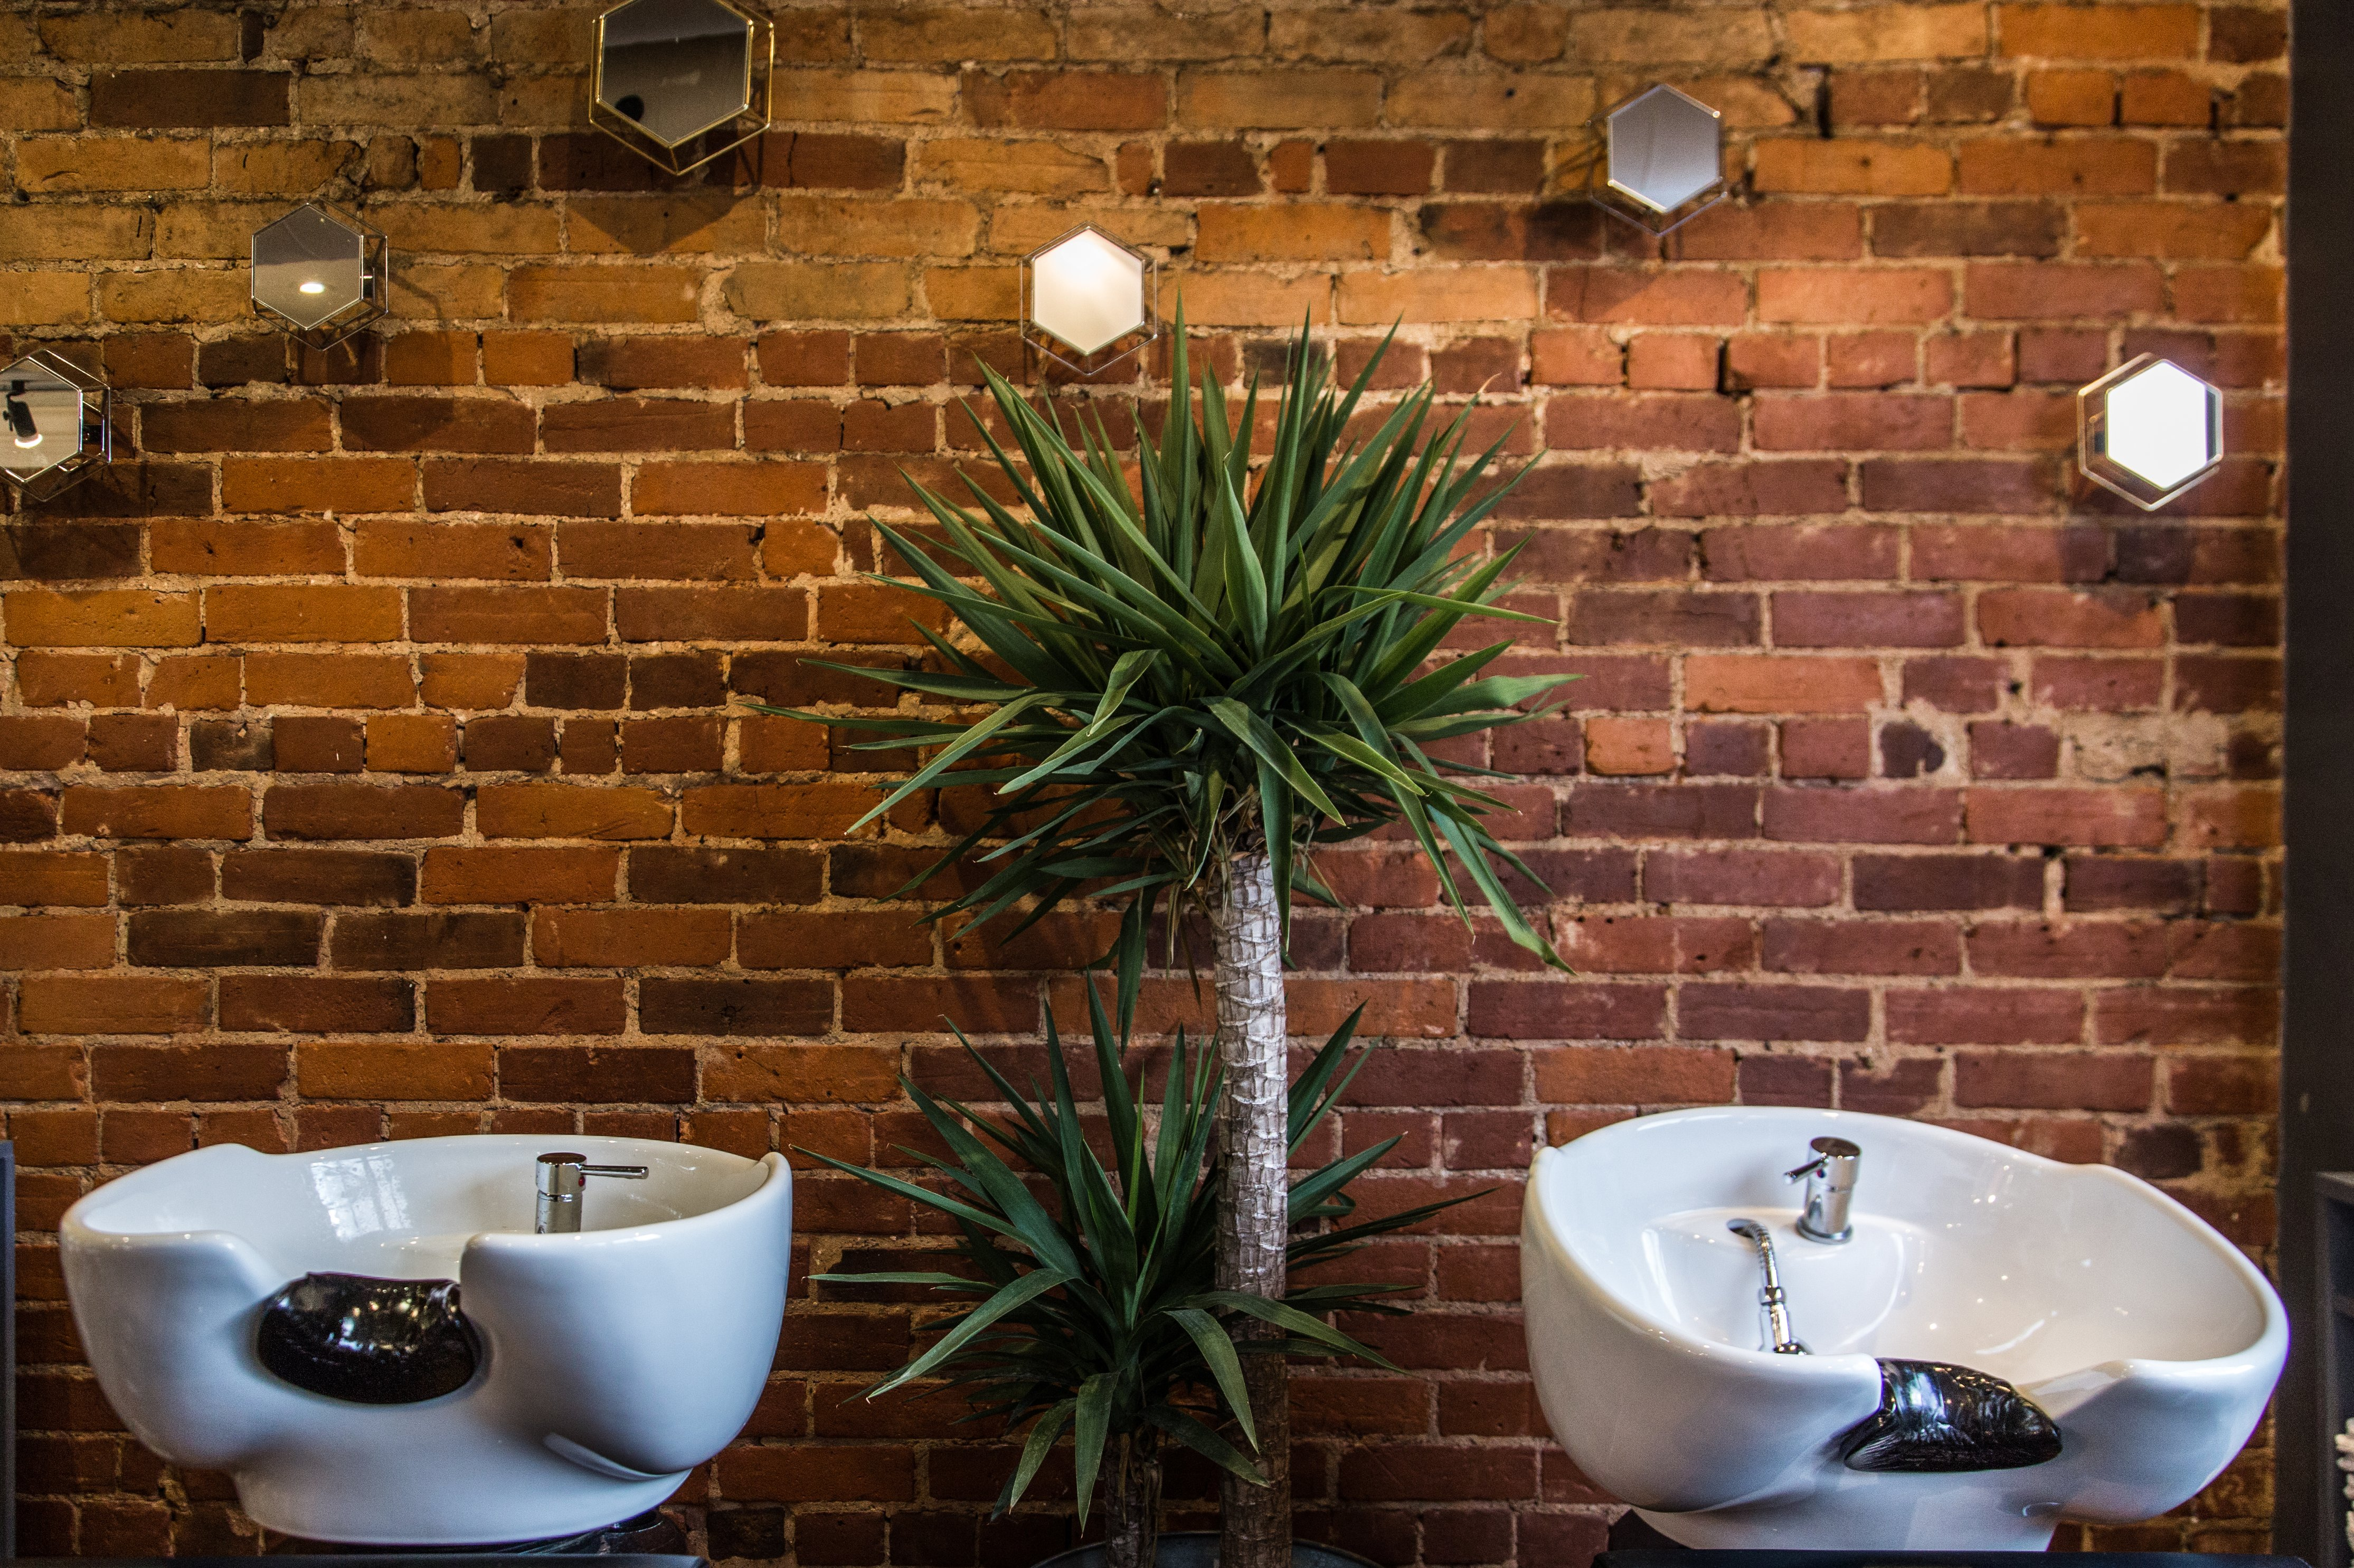 hair-salon-sinks-on-red-brick